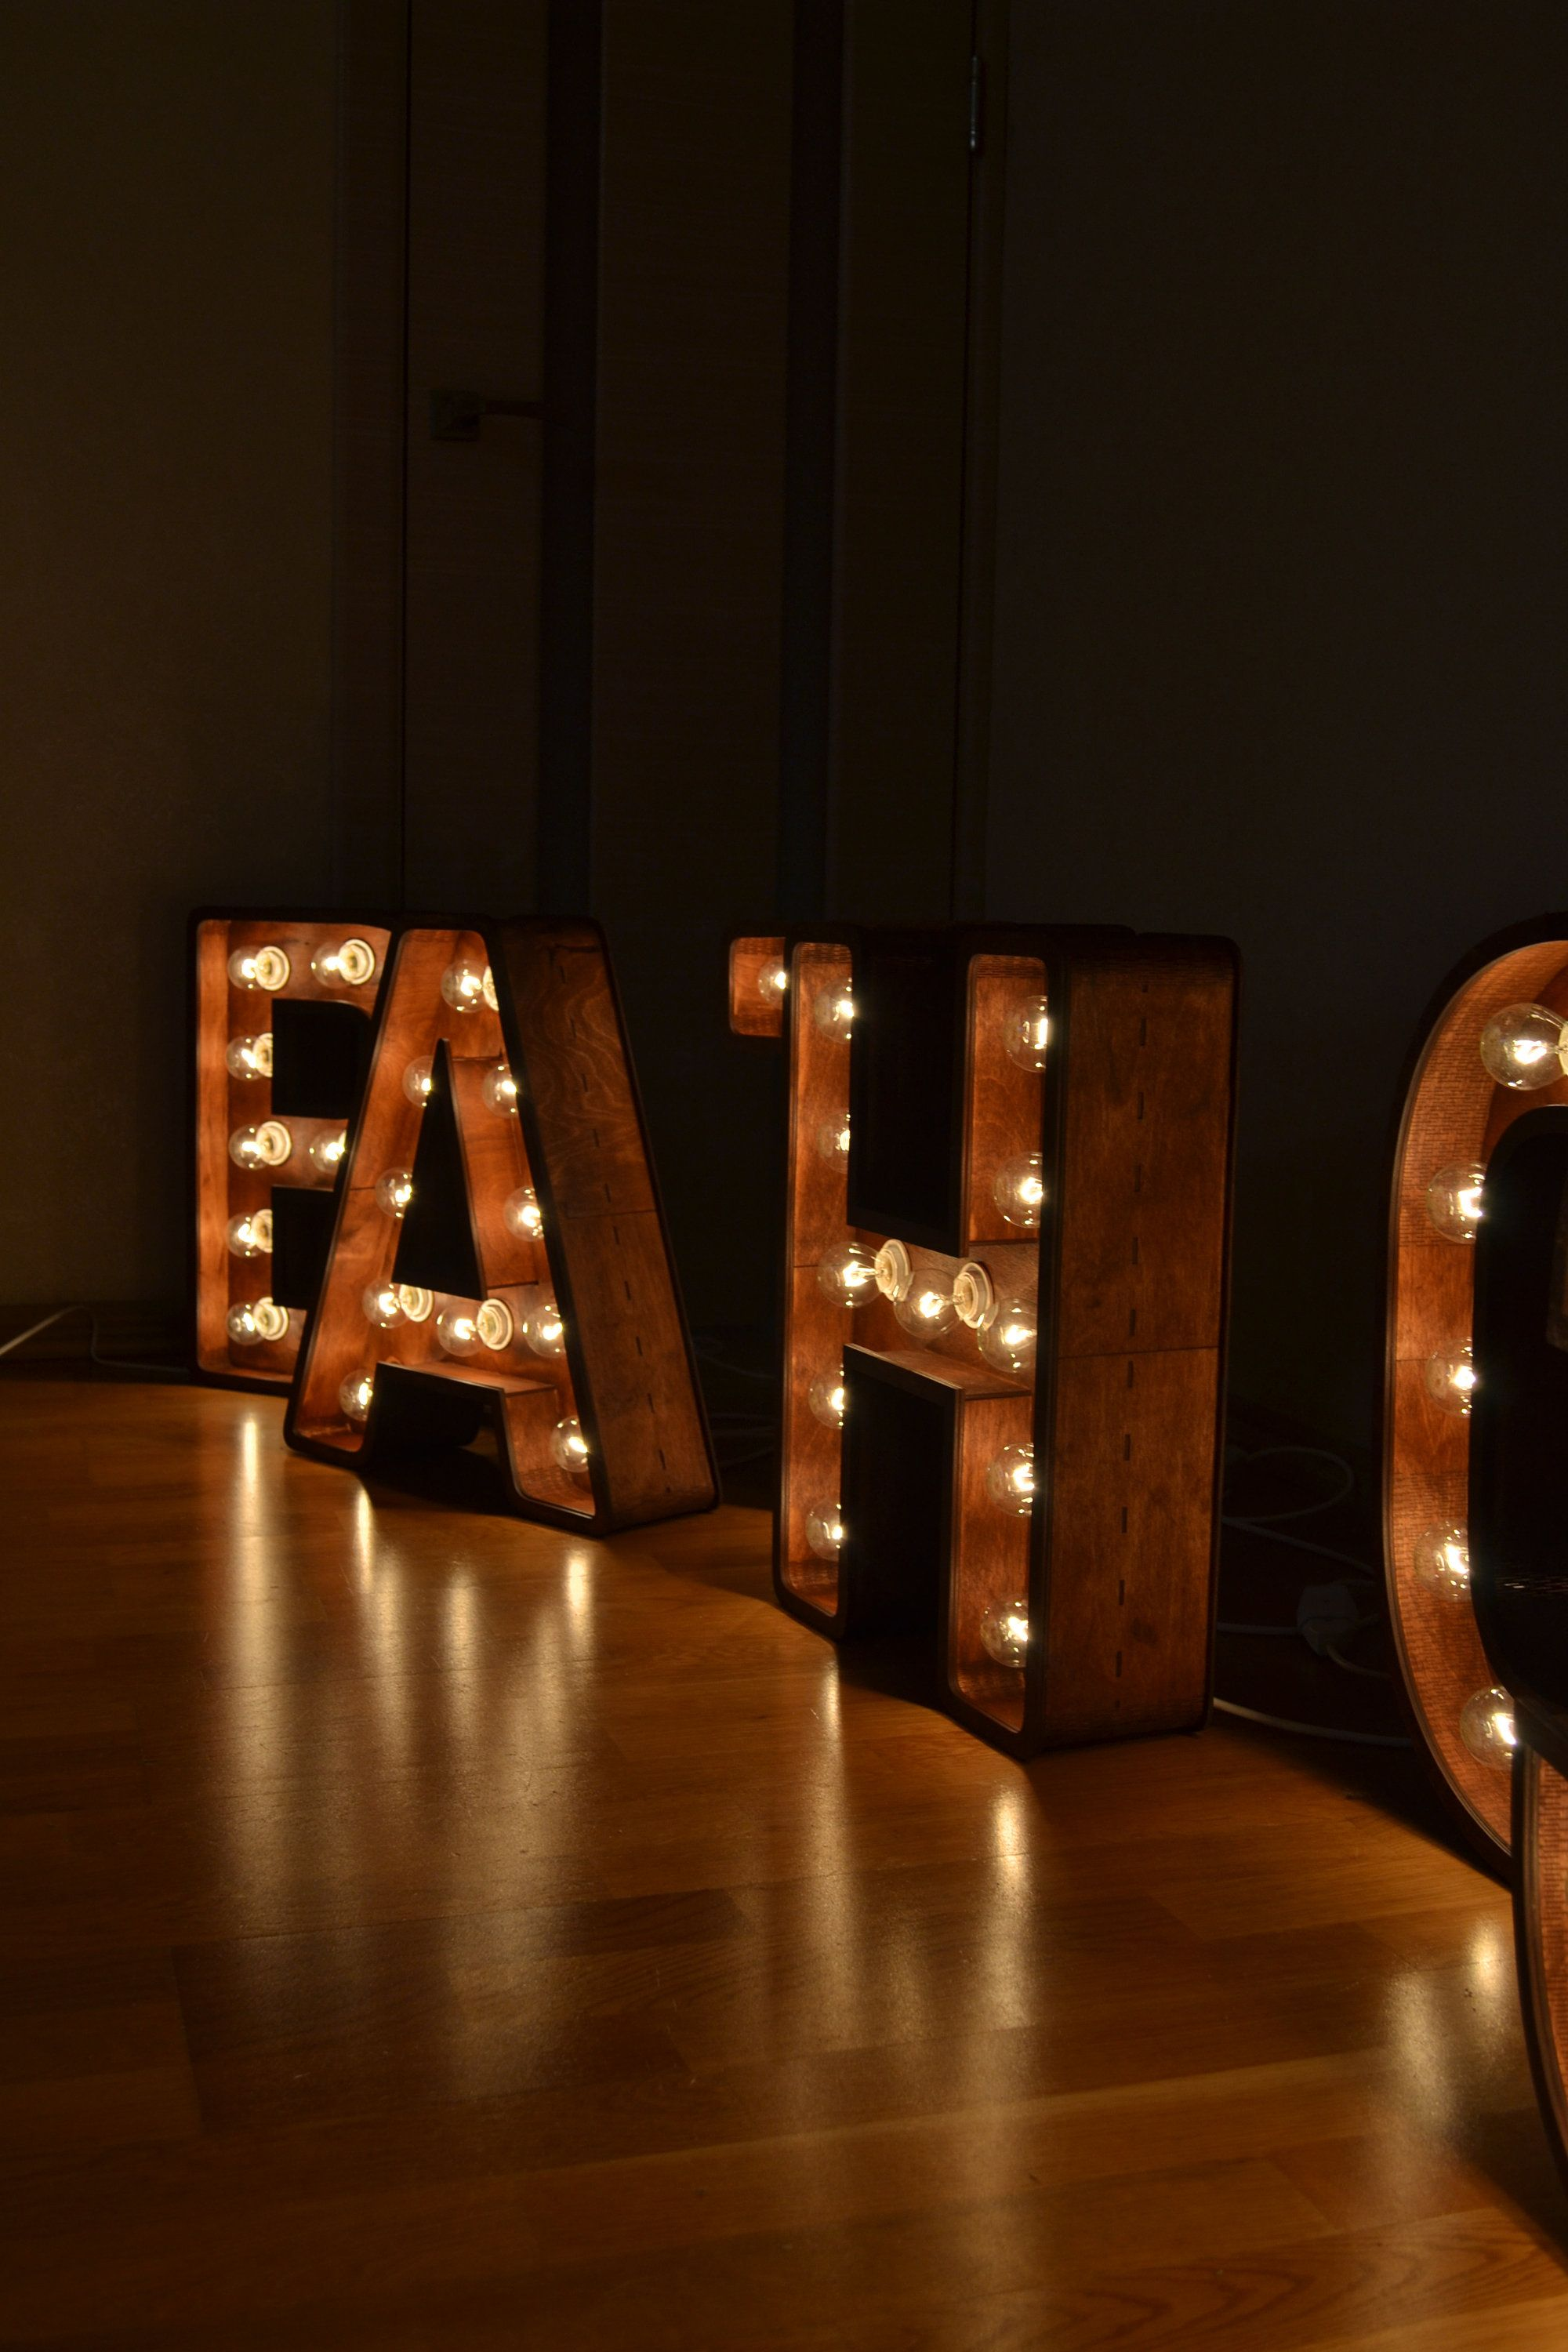 20 Lighted Marquee Letters Large Wood Letters Marquee Lights Industrial Farmhouse Light Up Letters Wedding Letters Lighted Letters In 2020 Light Letters Marquee Lights Lighted Marquee Letters